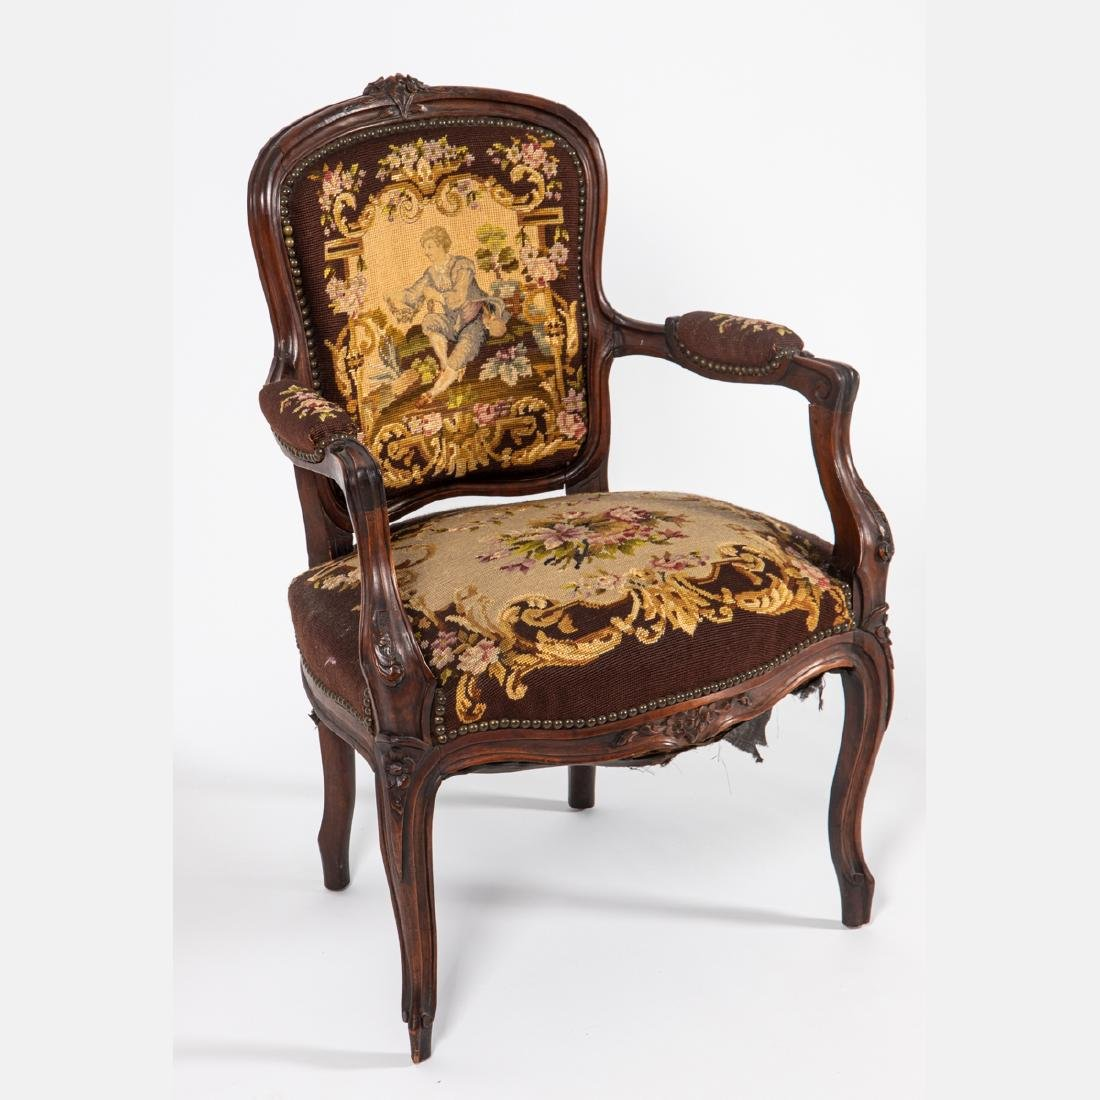 A French Provincial Style Walnut Fauteuil with